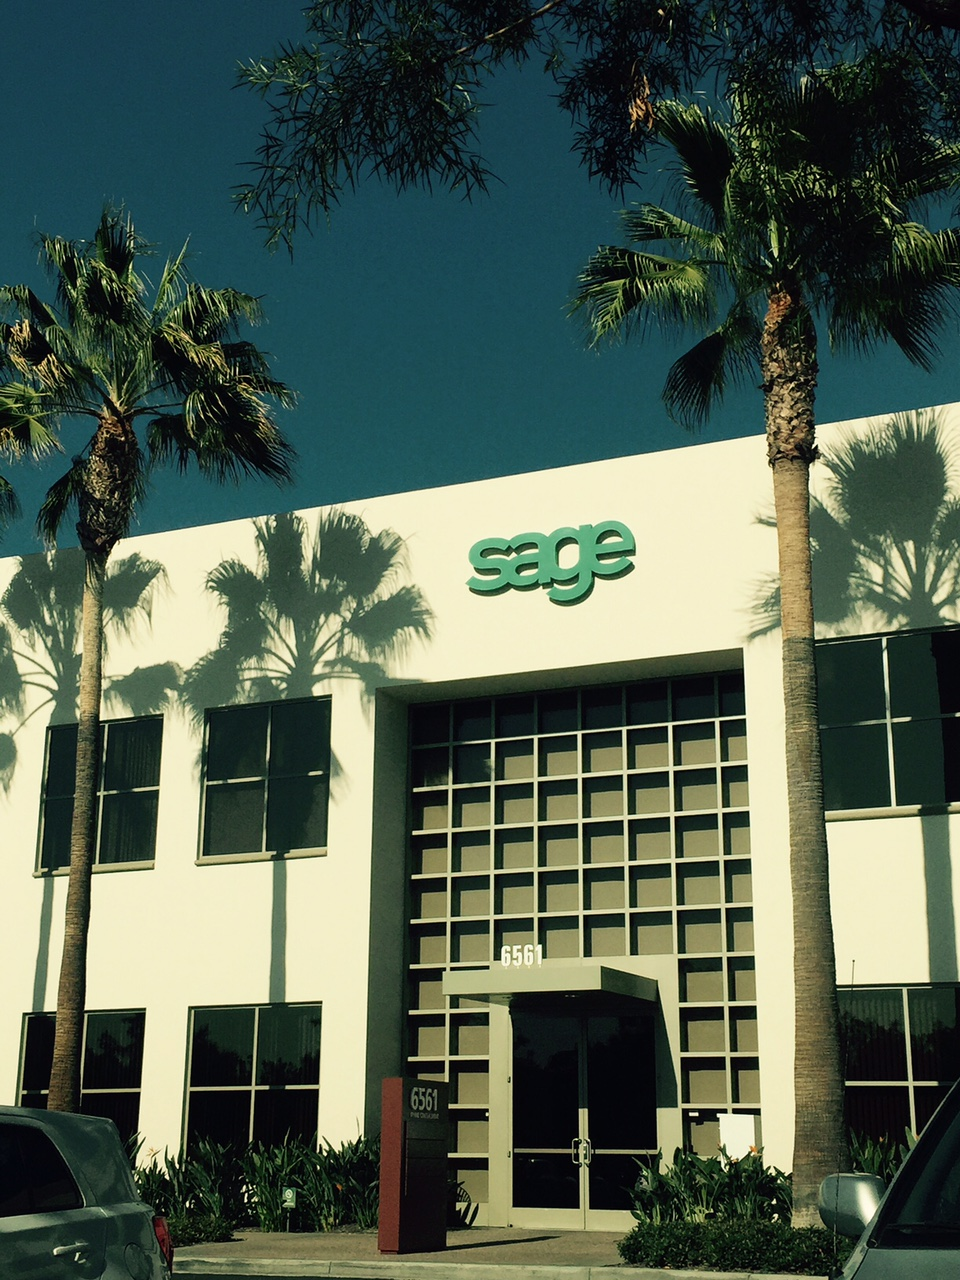 We're talking all things Sage ERP today at eBridge after our recent visit to their head office in California...